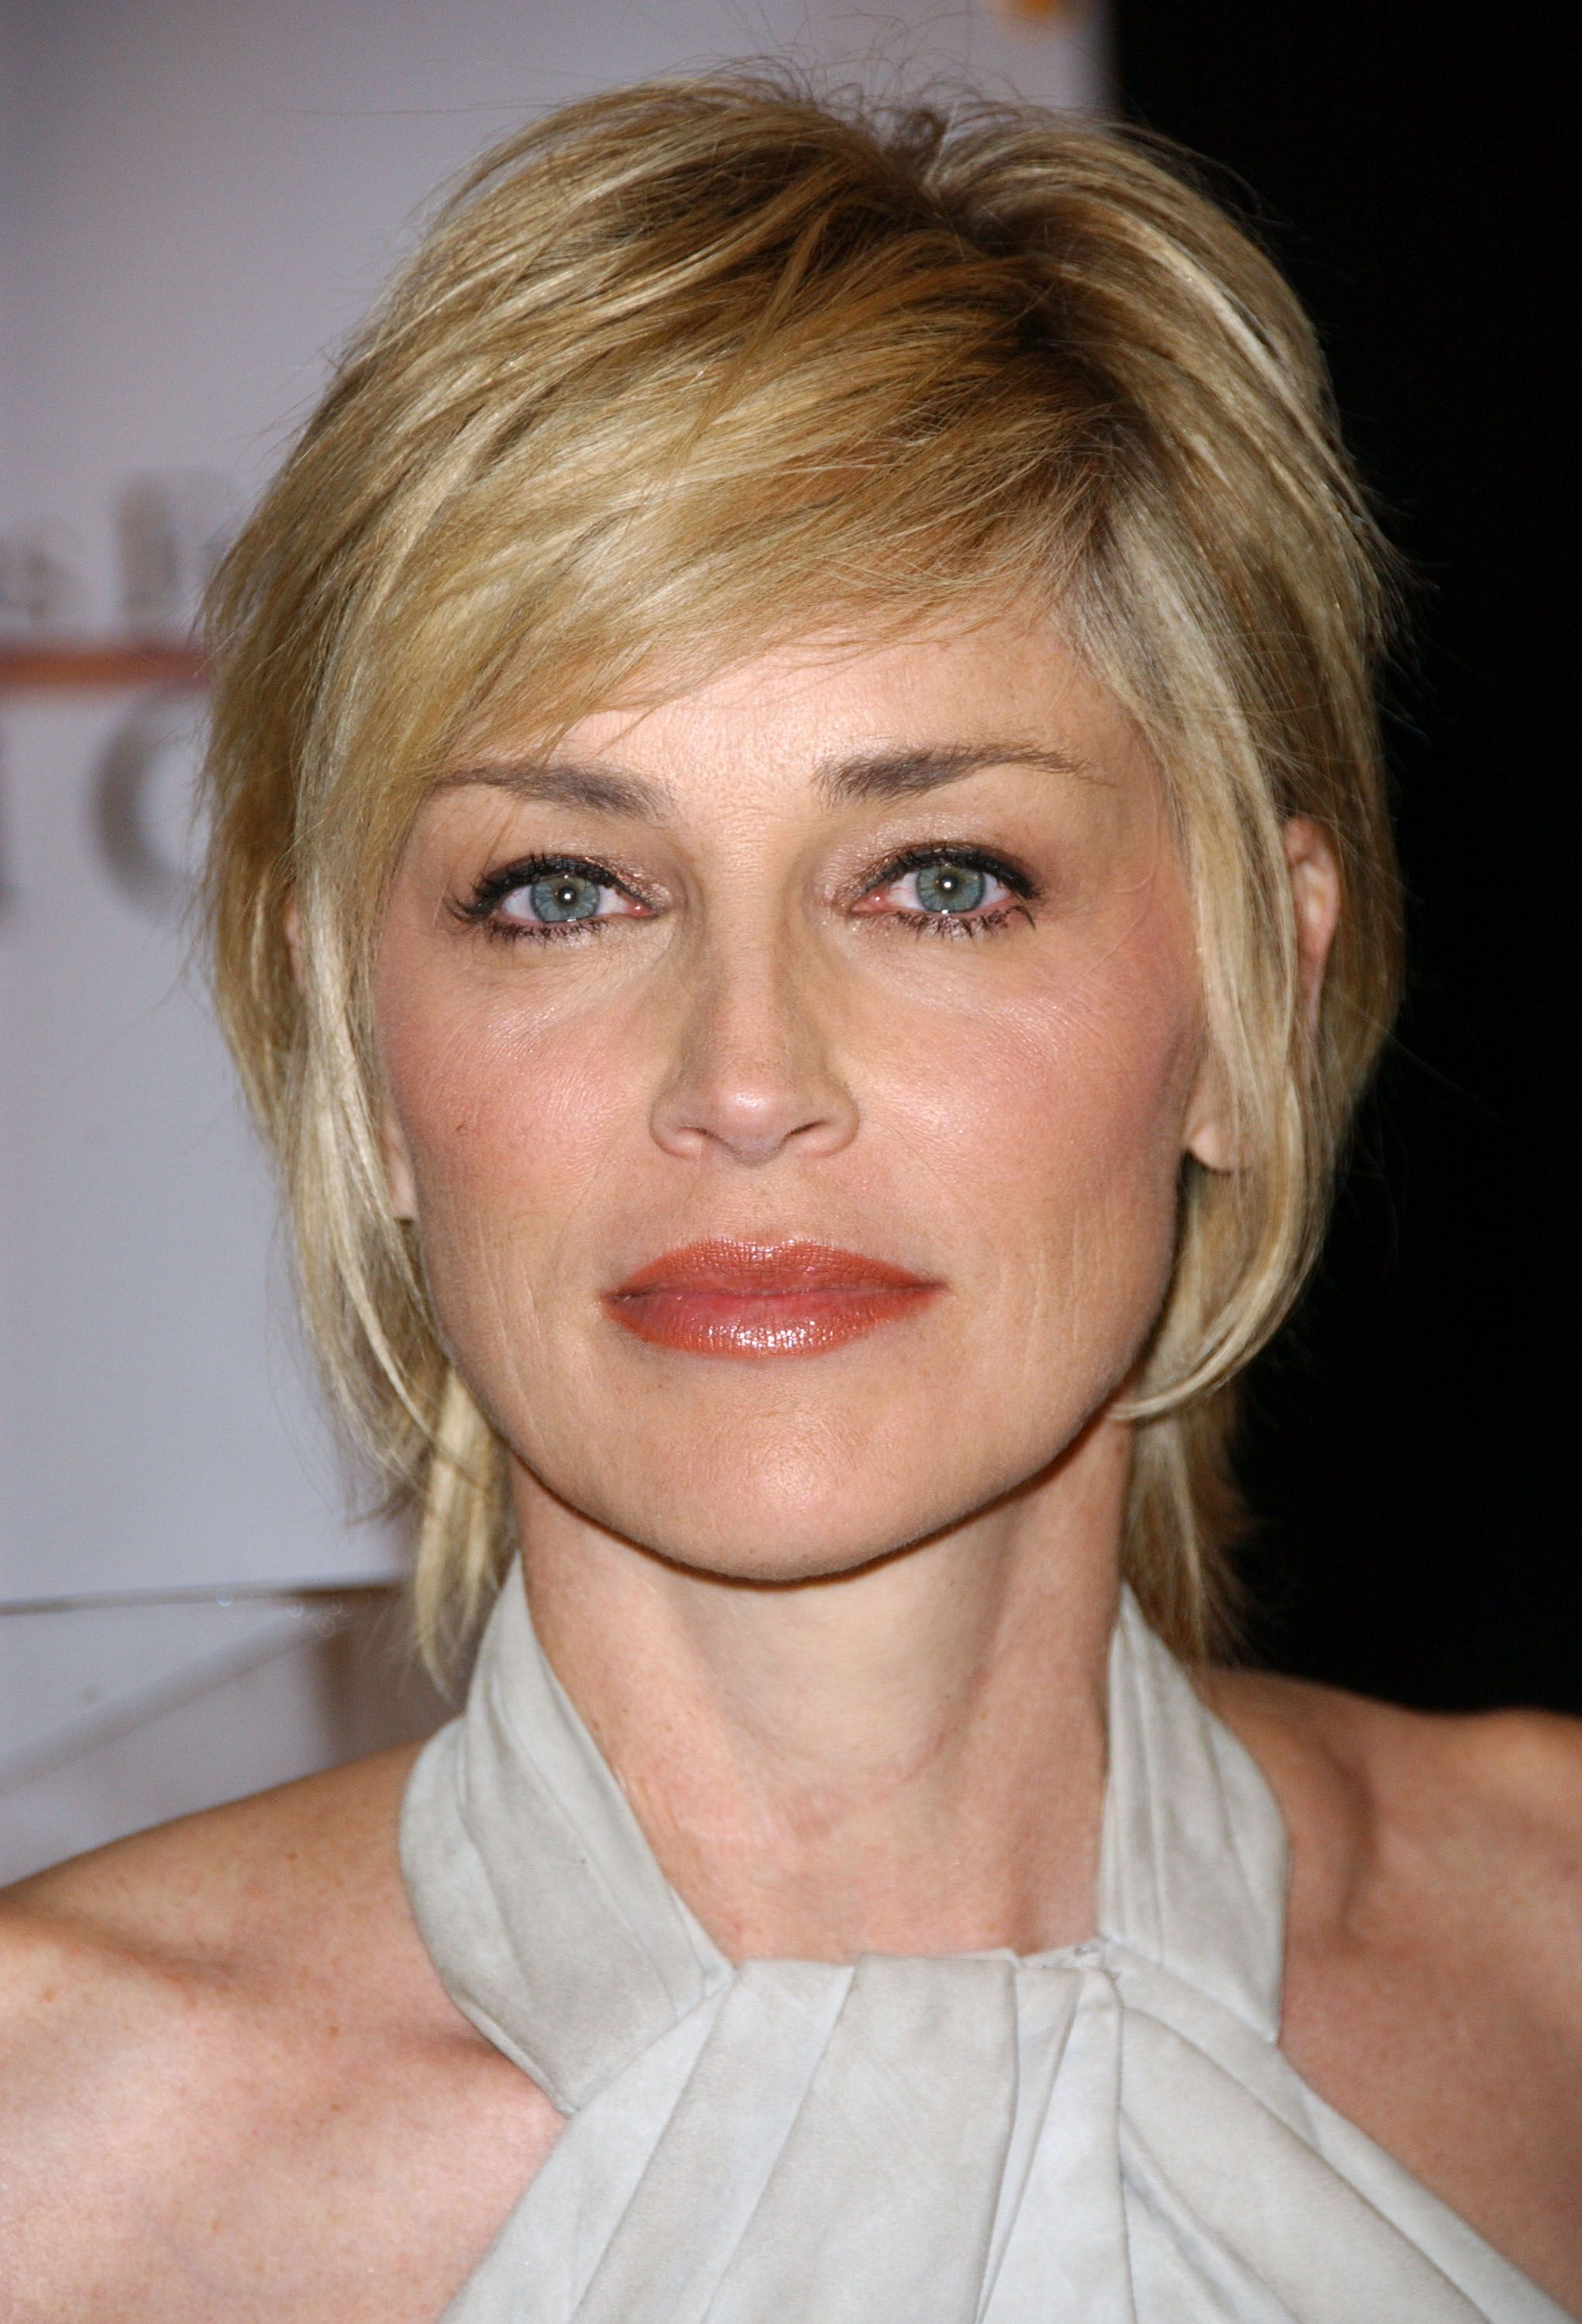 Sharon stone spiky short haircut for older women over 50 getty images - Sharon Stone Hair Cuts